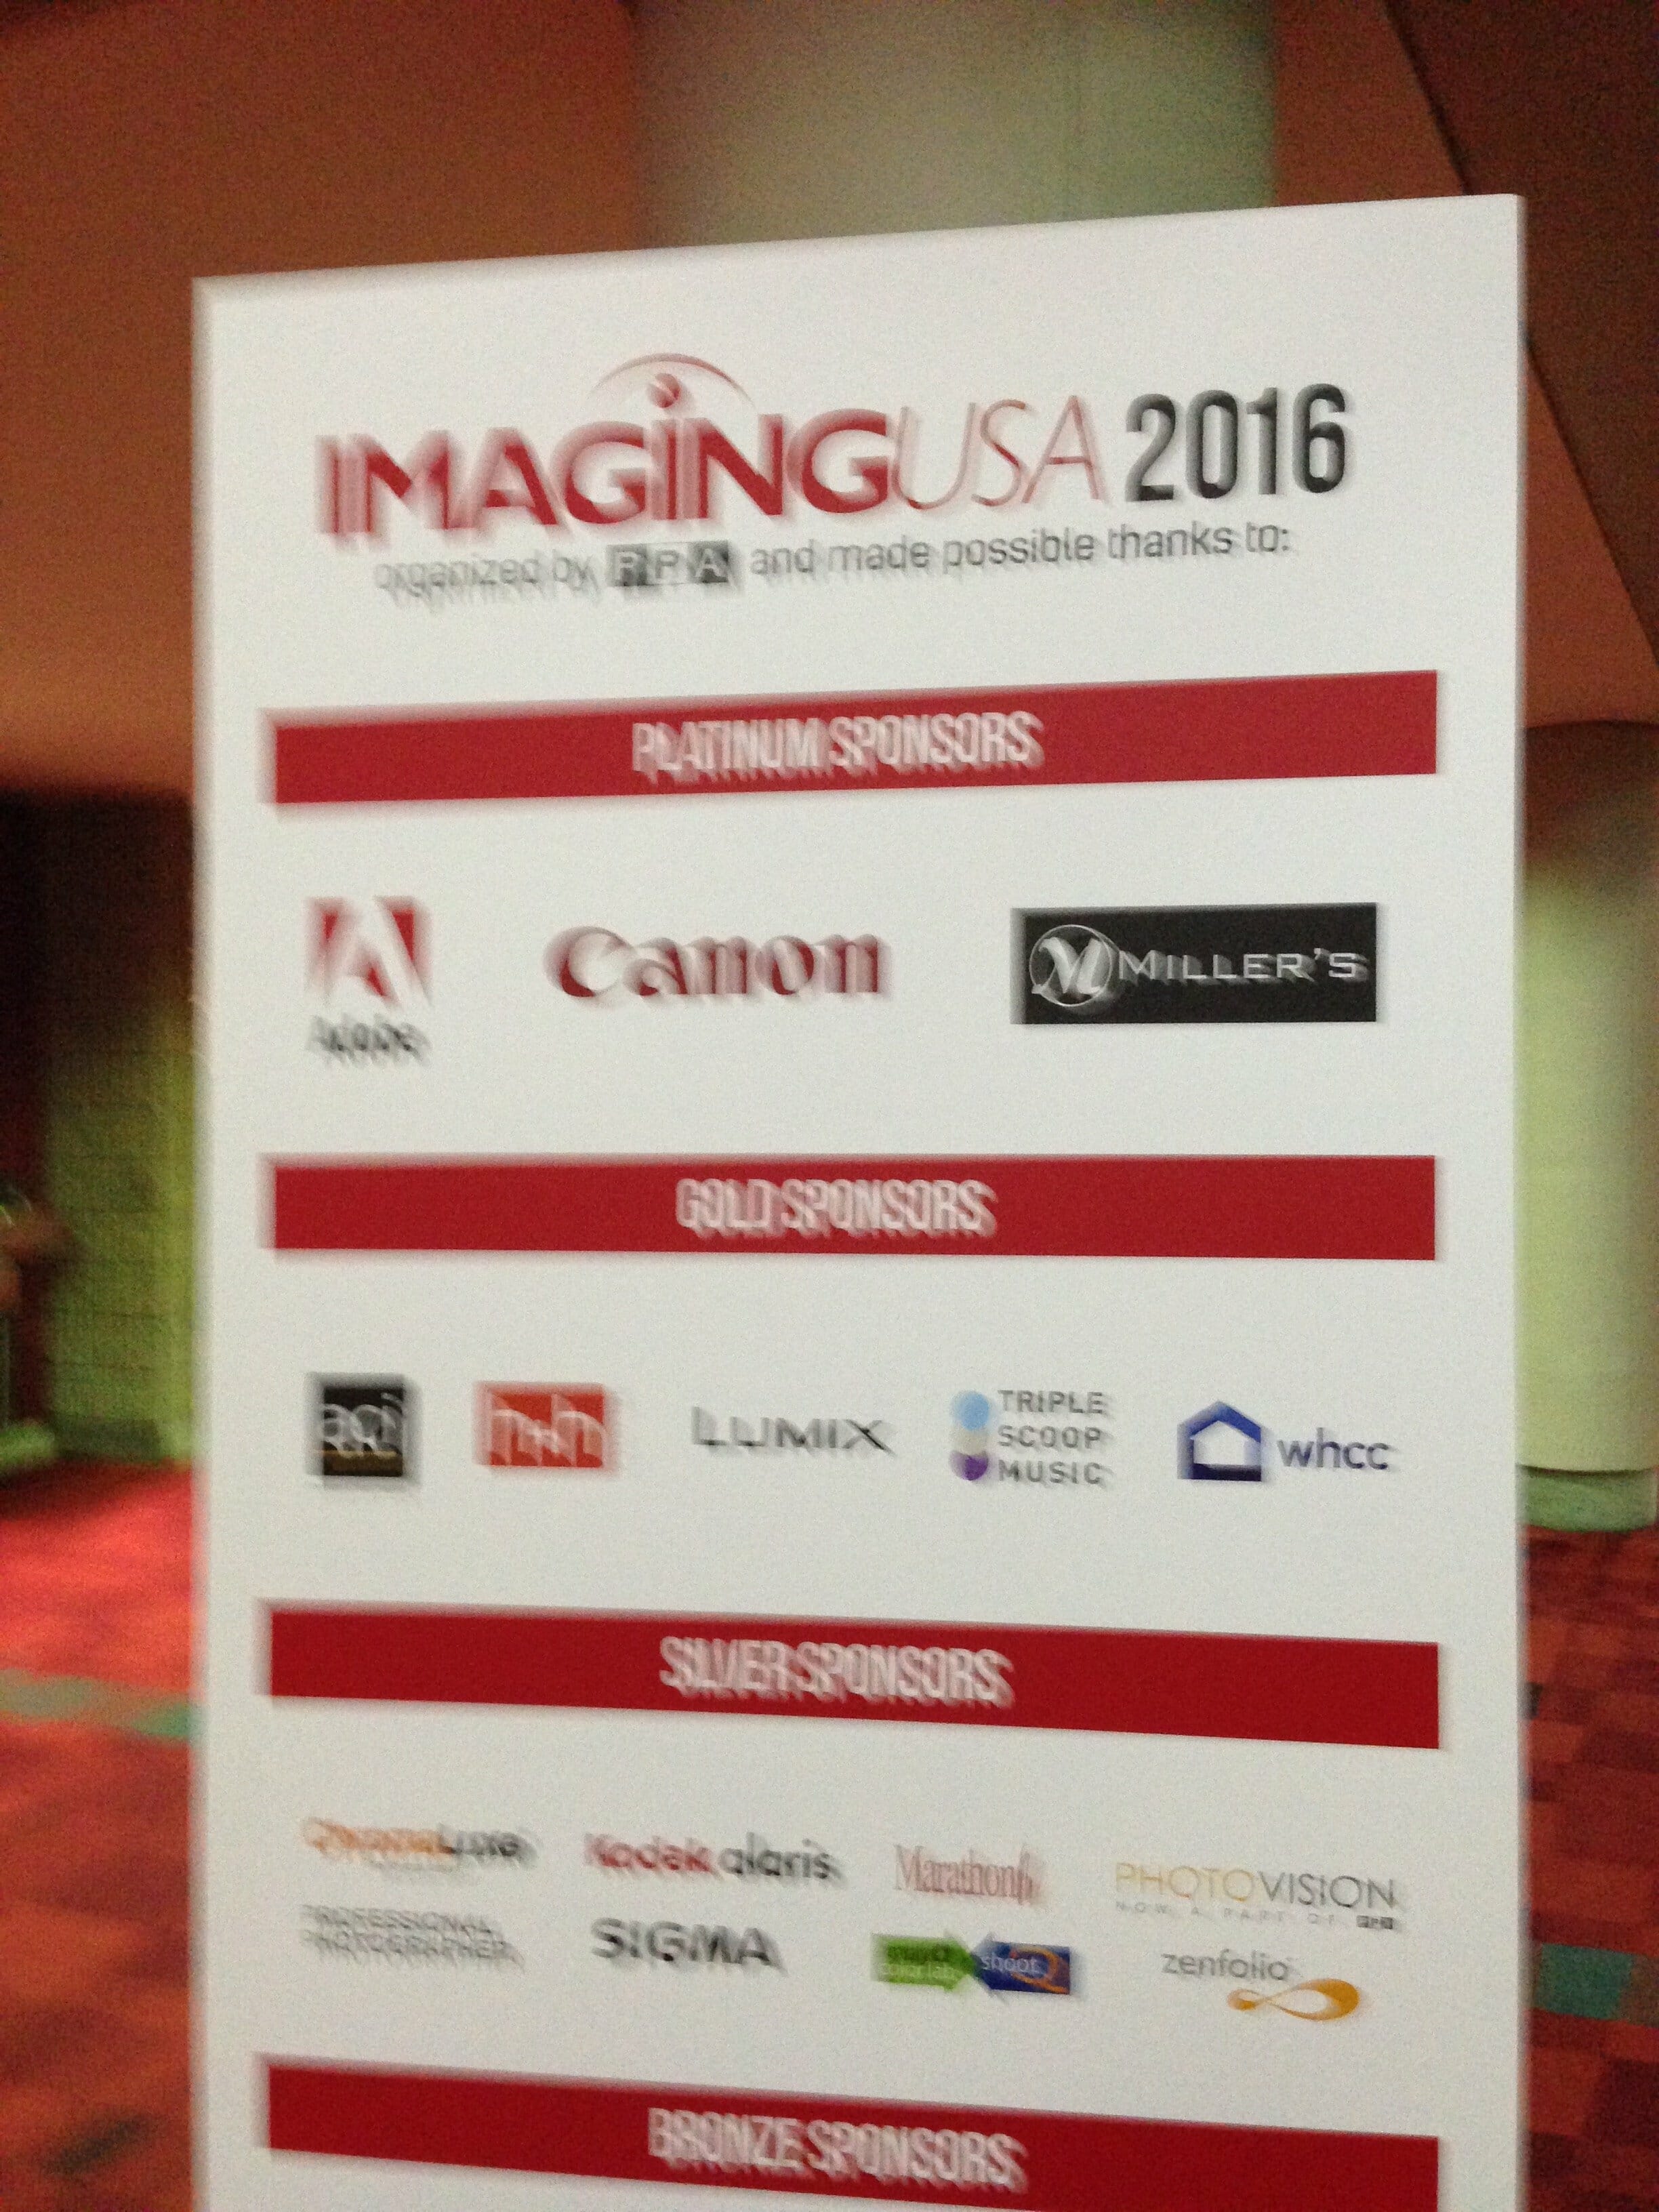 Imaging USA 2016 Review sign with information